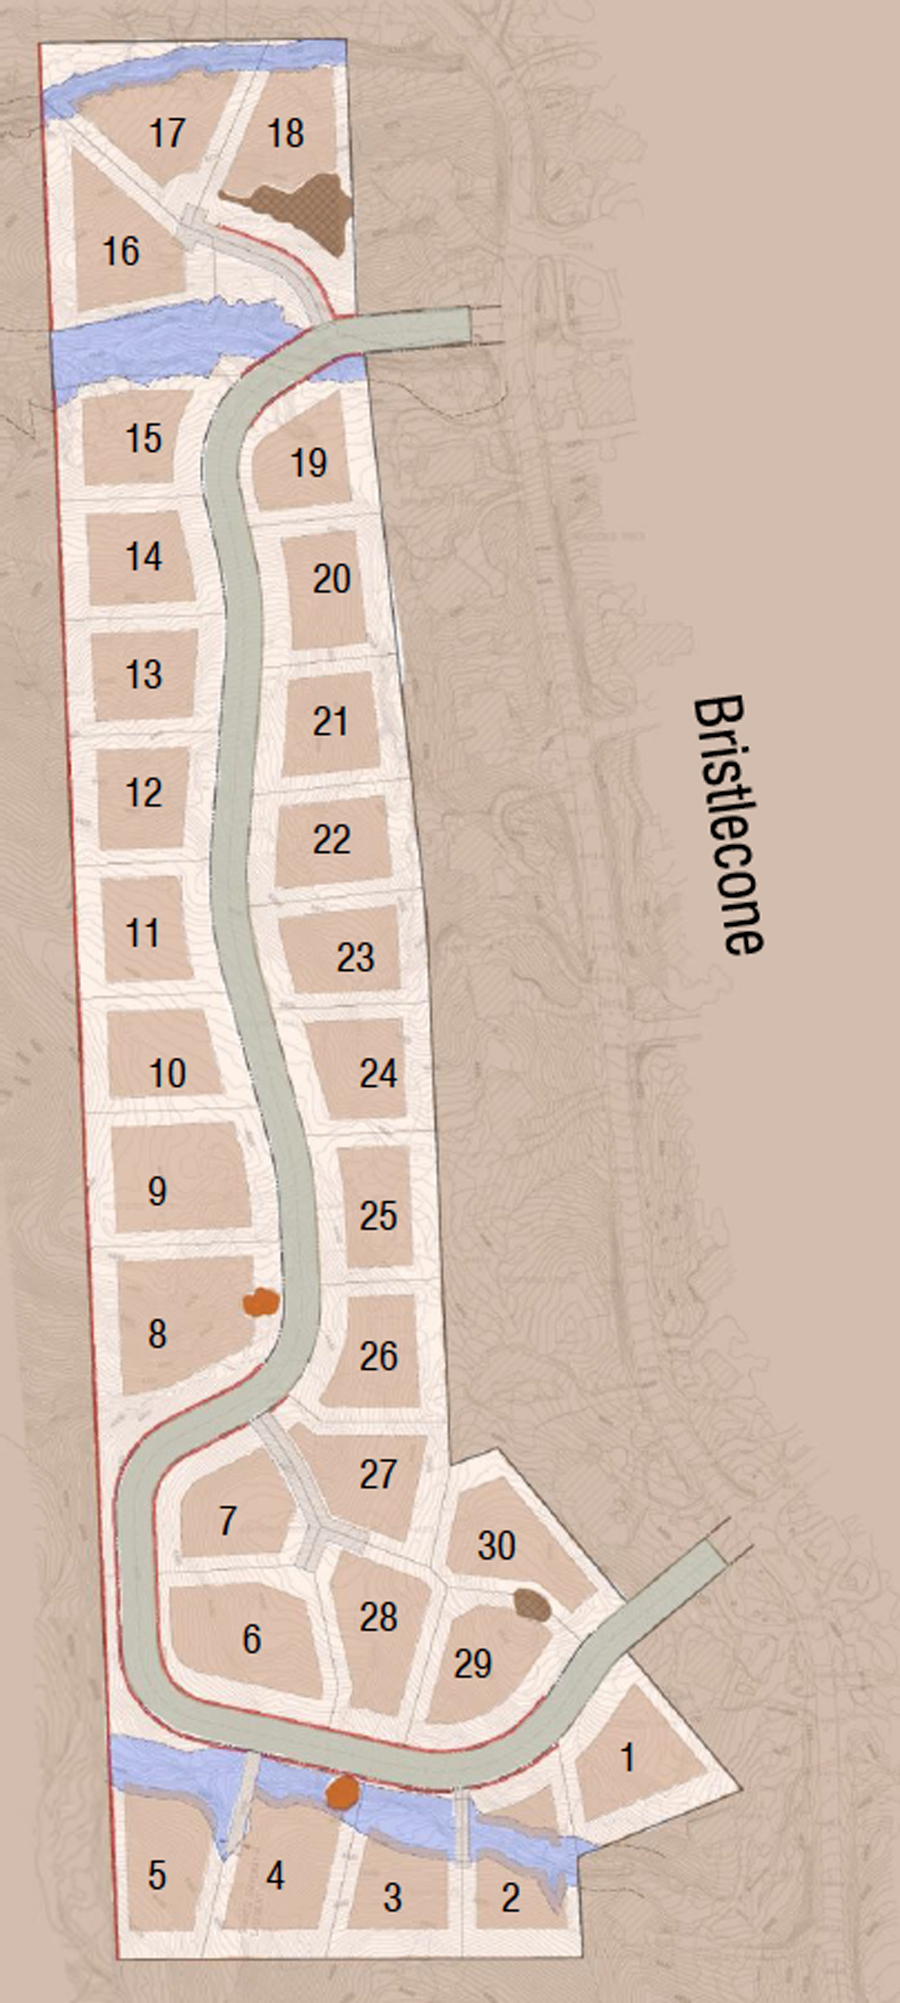 Hillside-Vista-Estates-Site-Plan